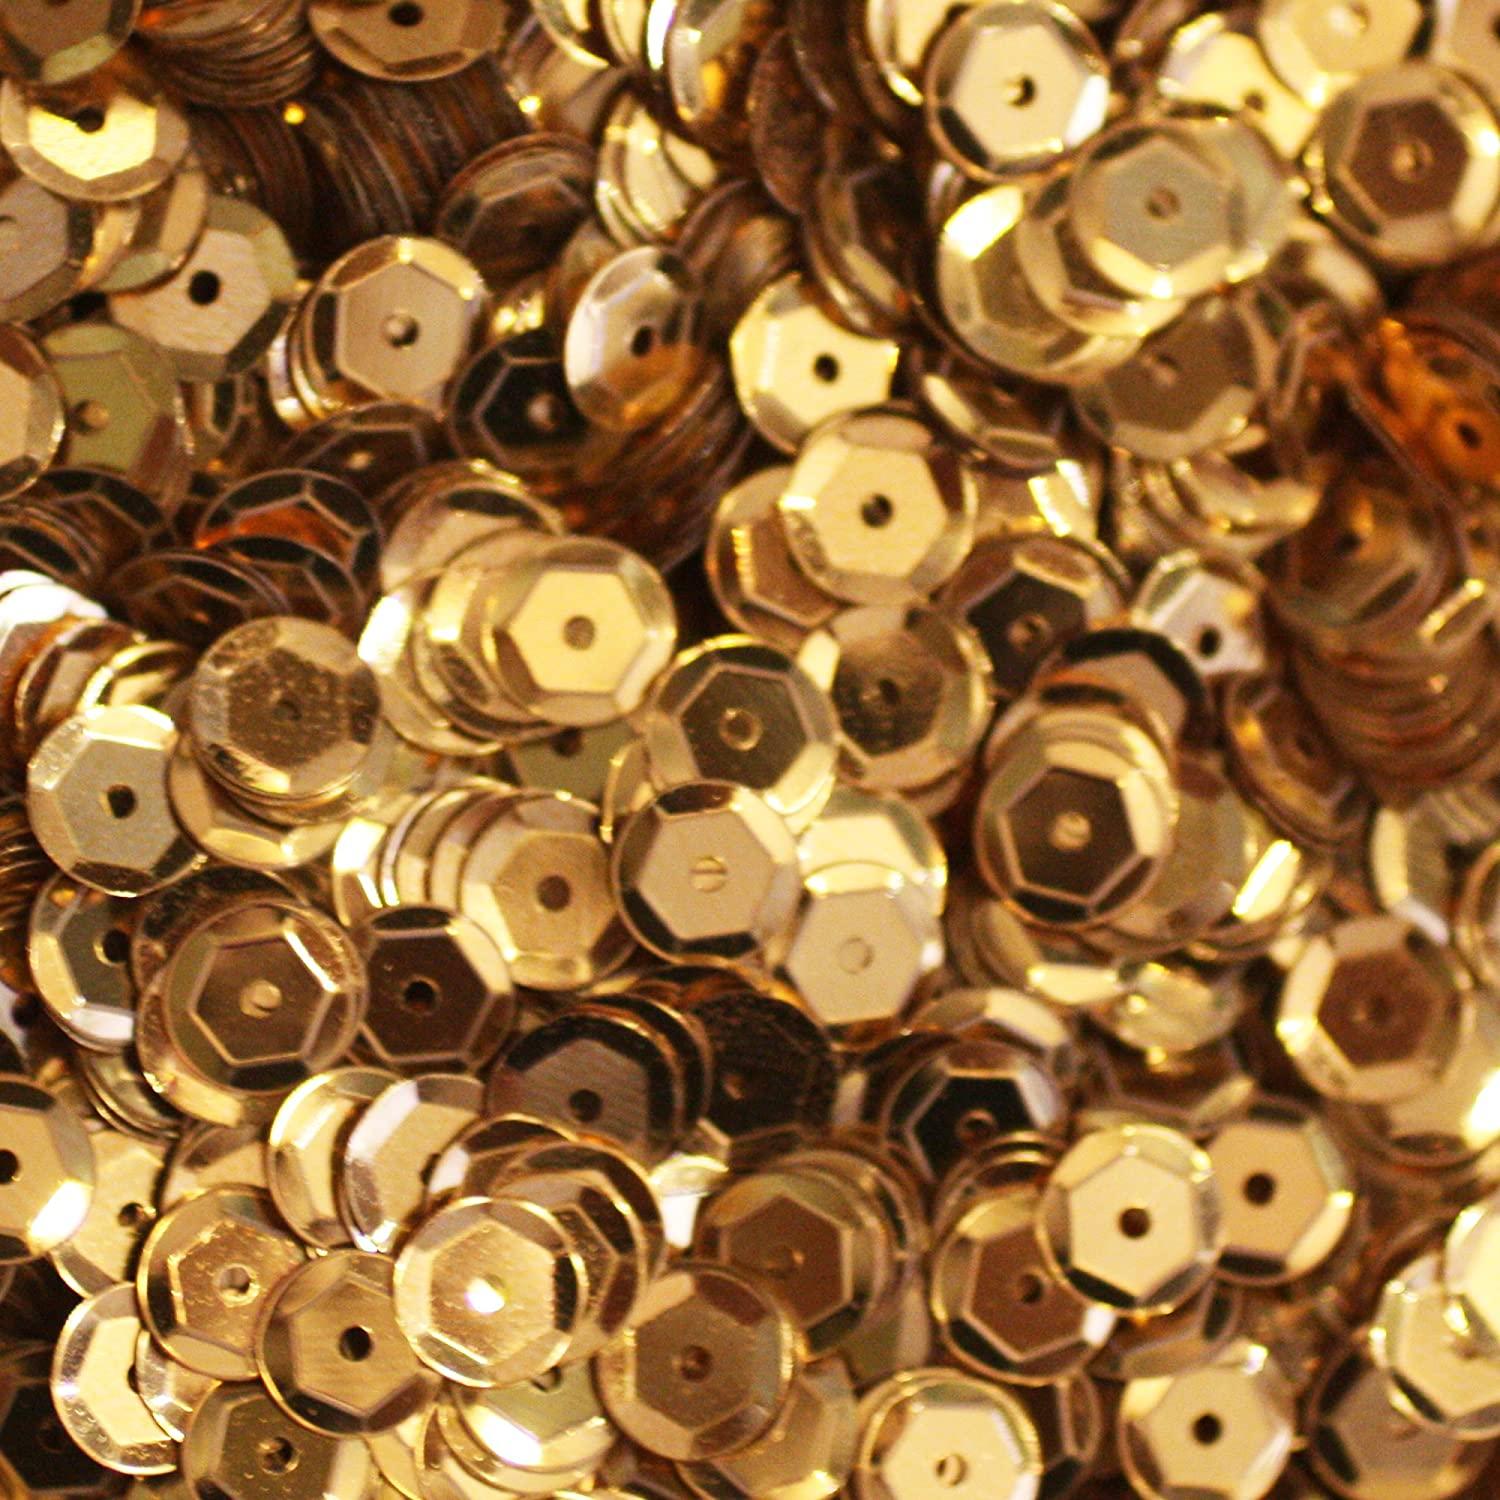 Amazon: 5mm Cup Sequins Gold Loose Sequins For Embroidery, Applique,  Arts, Crafts, And Embellishment